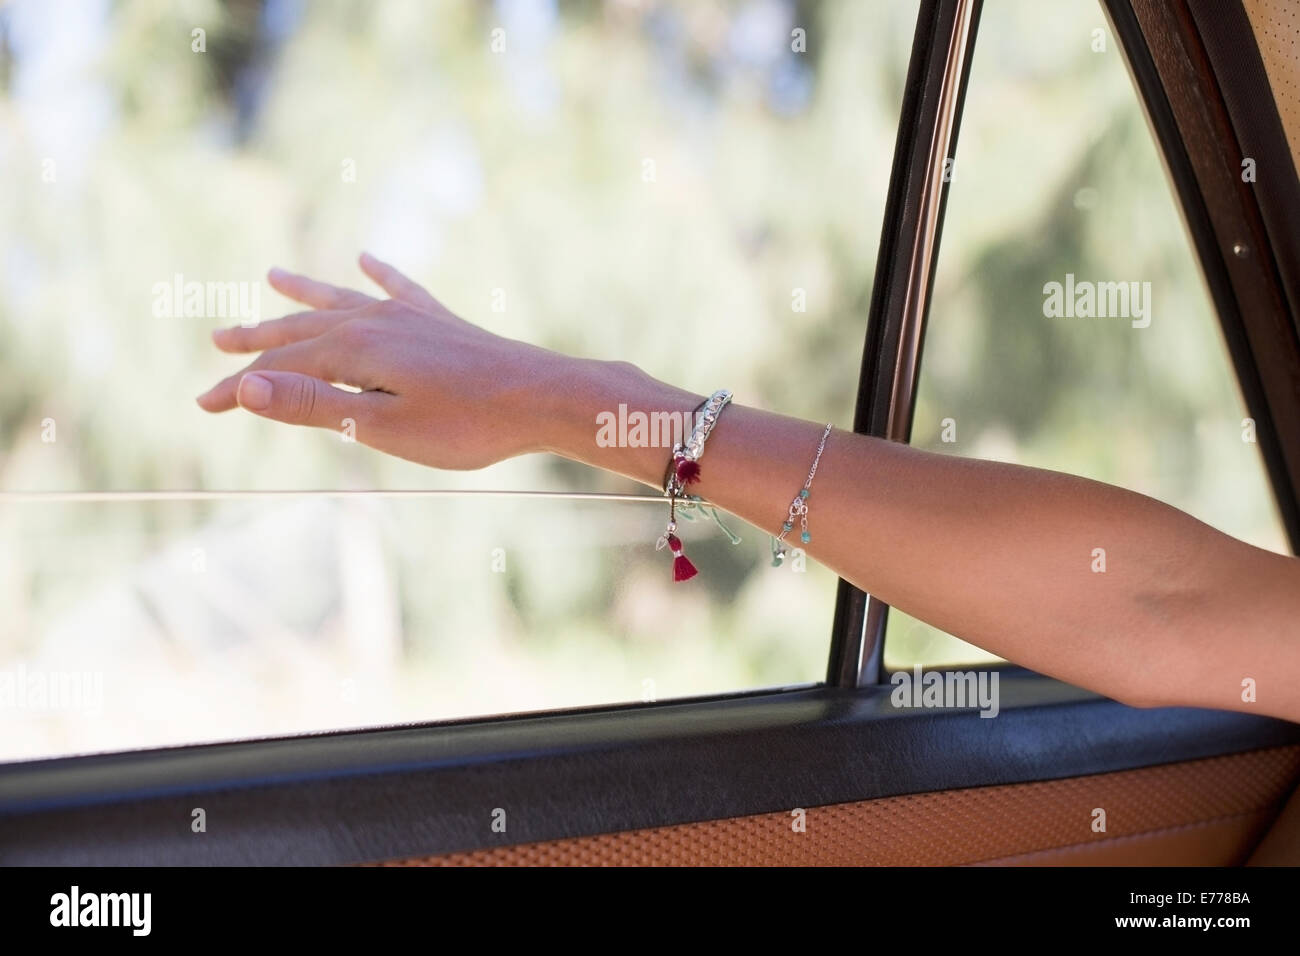 Woman feeling wind on her hand through car window - Stock Image